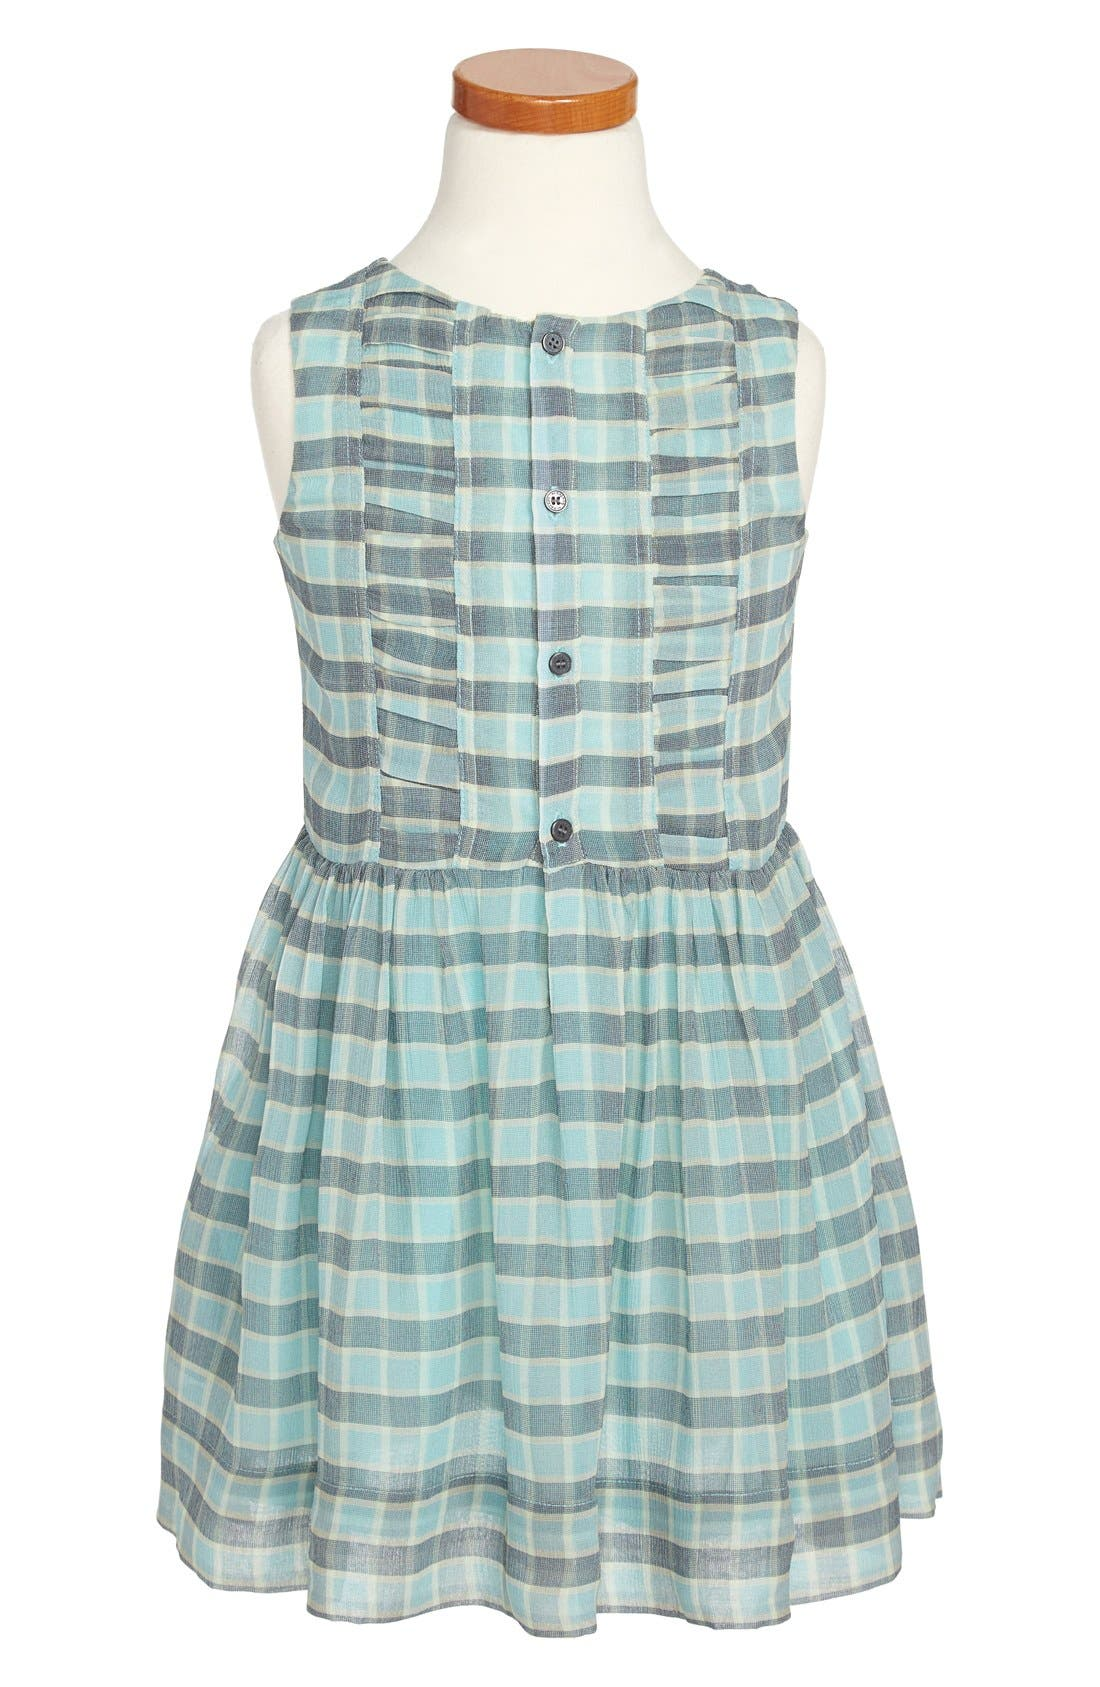 Alternate Image 1 Selected - Burberry Ruched Silk Dress (Little Girls & Big Girls)